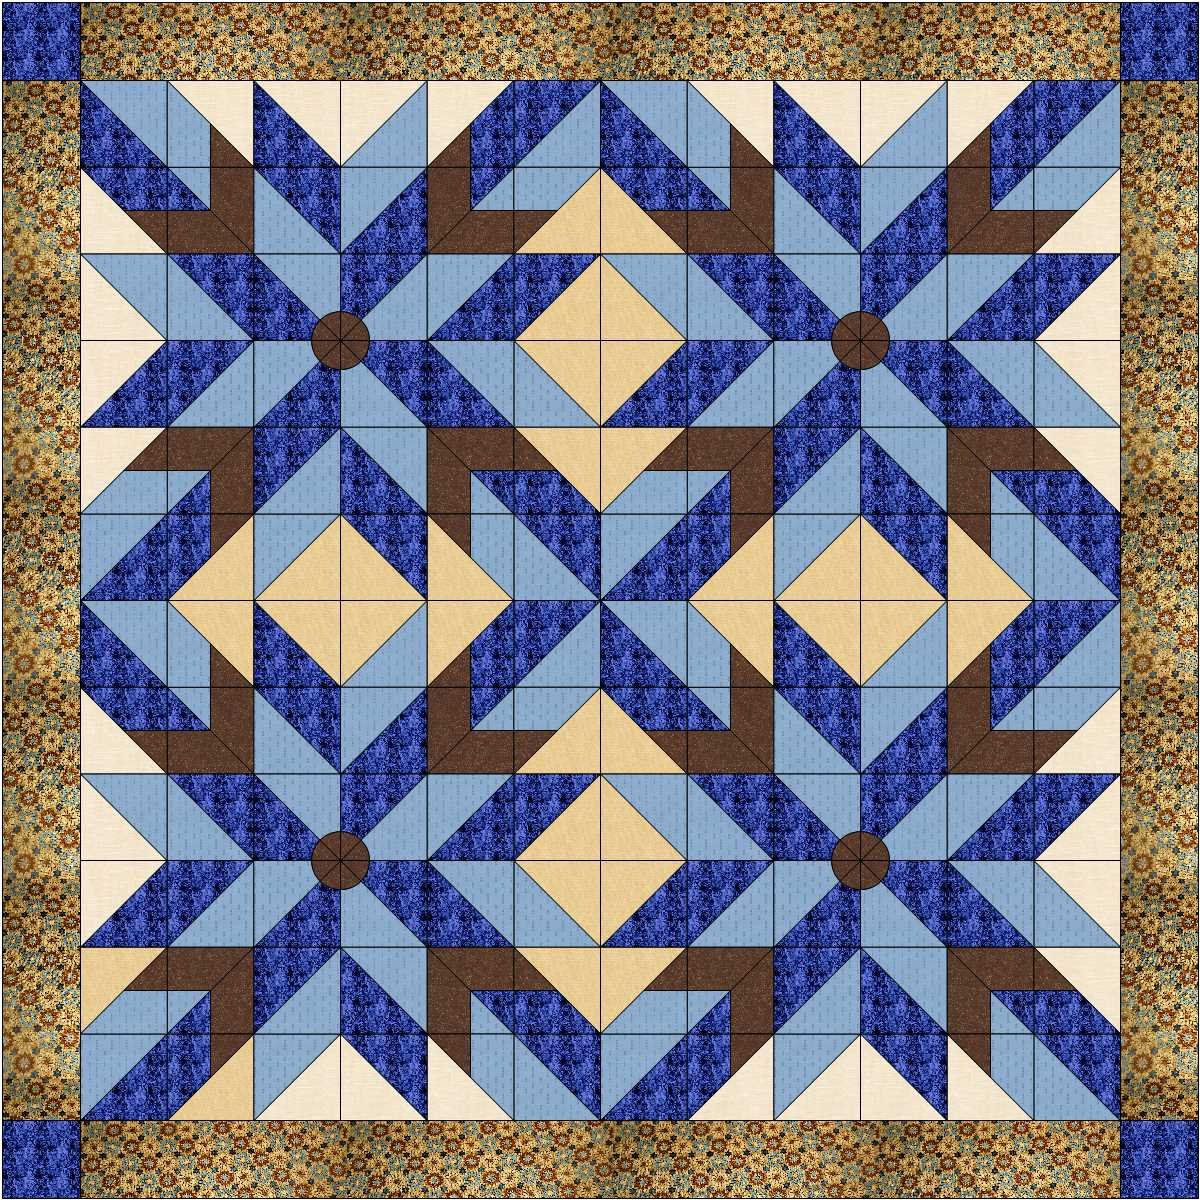 Quilt Kit Classic Barn Stars/Blues and Browns Galaxy/RJR